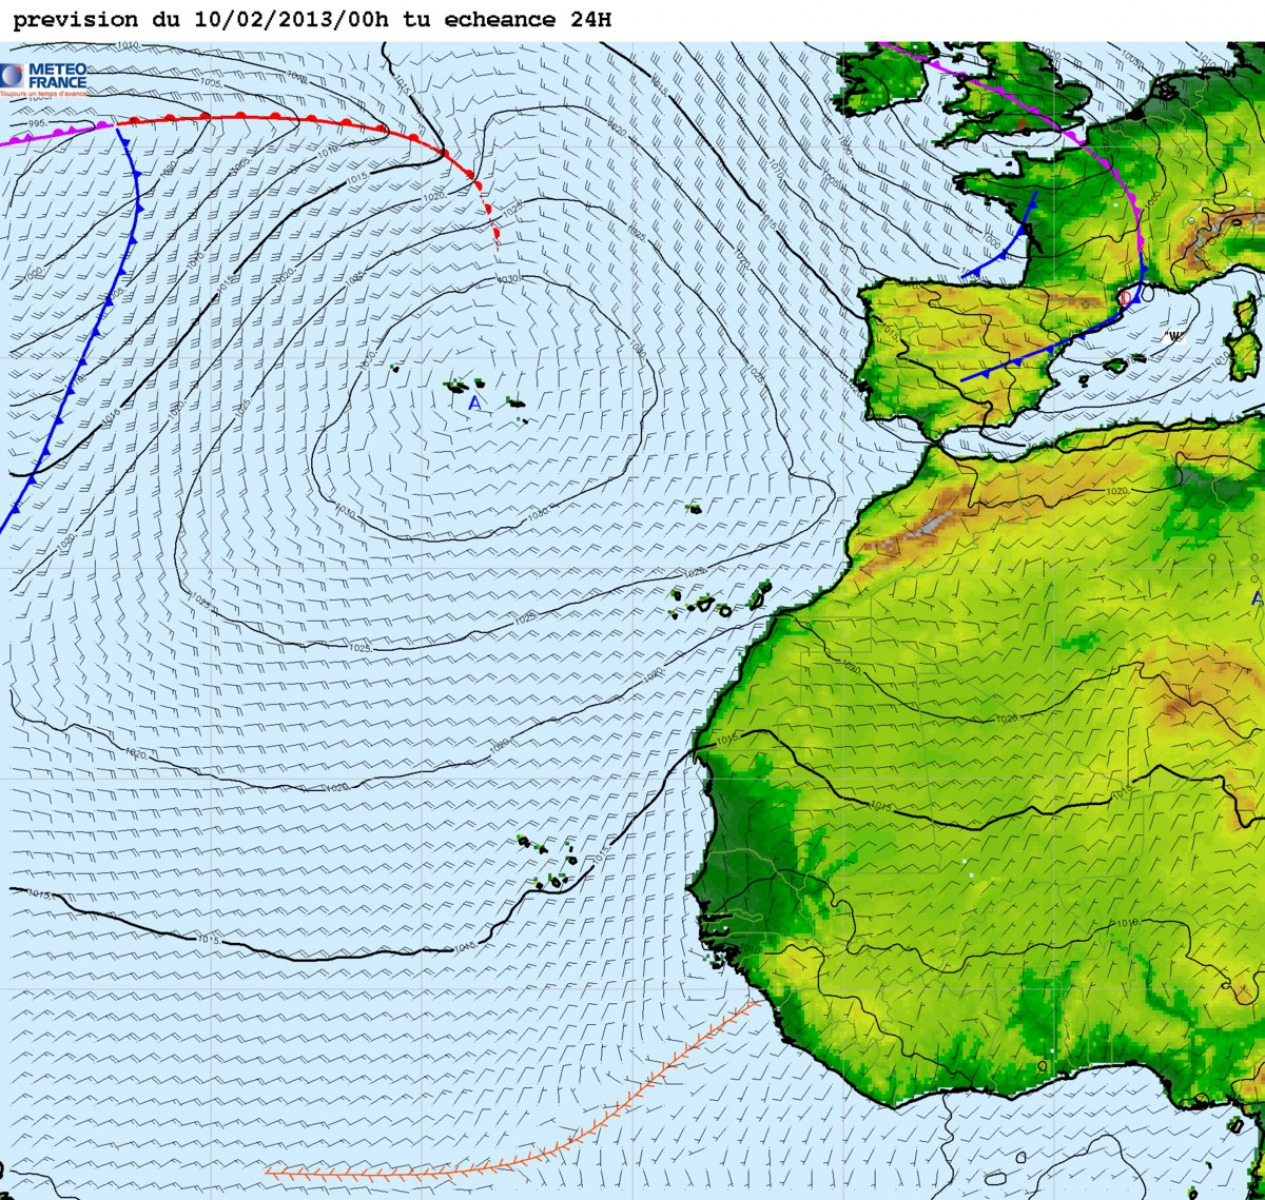 Weather forecast for the 11th february 2013 at 00 UTC.